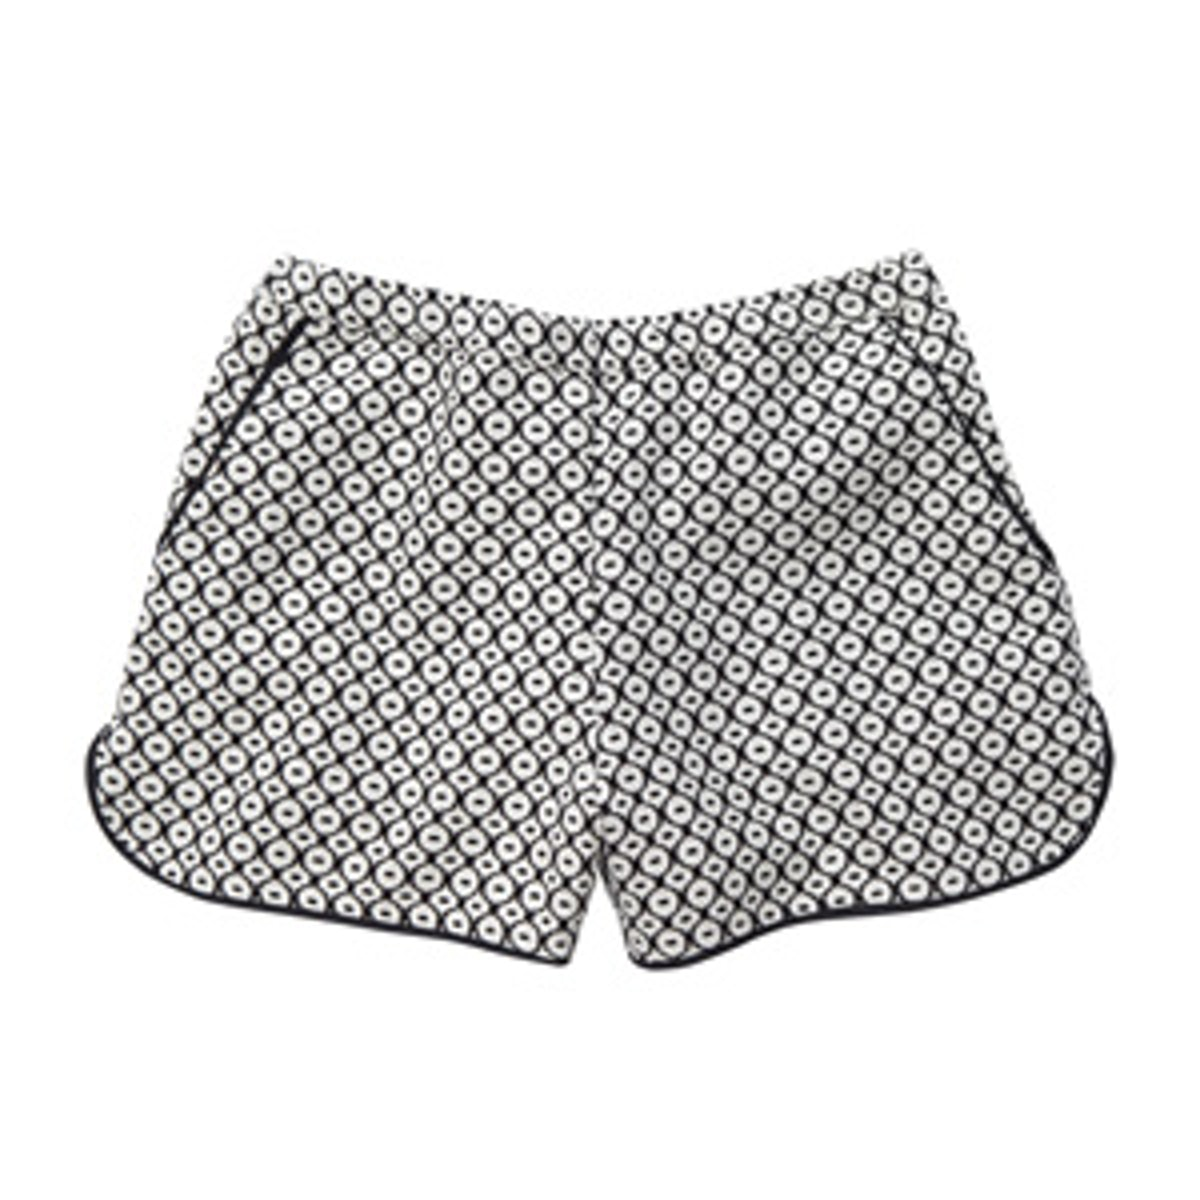 Tiger Short in Woven Geometric